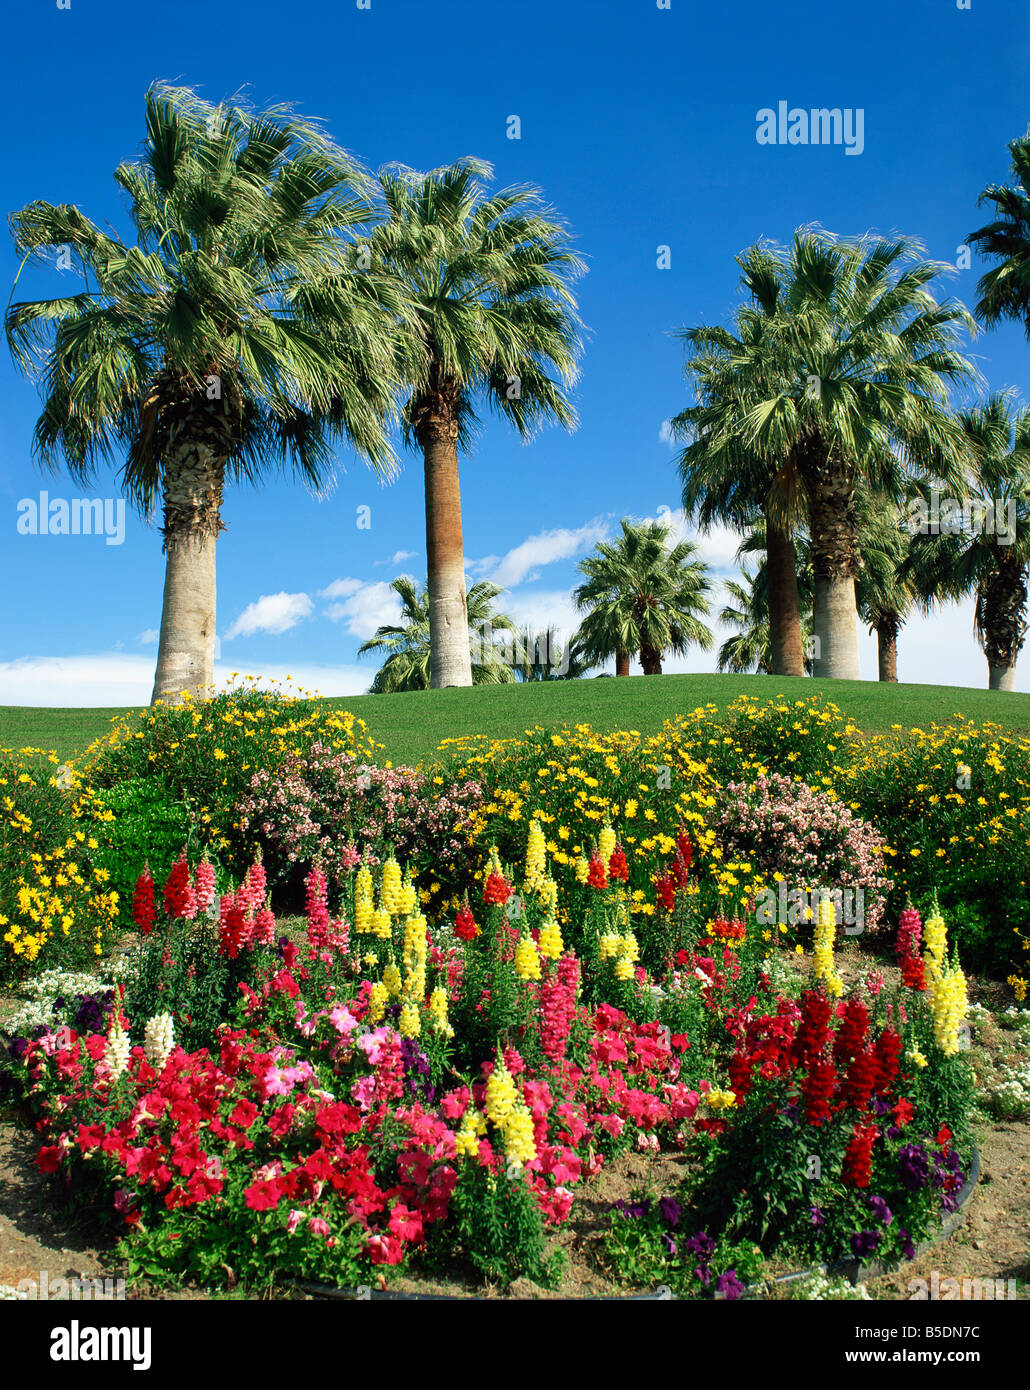 Petunias And Antirrhinum Flowers With Palm Trees In The Background